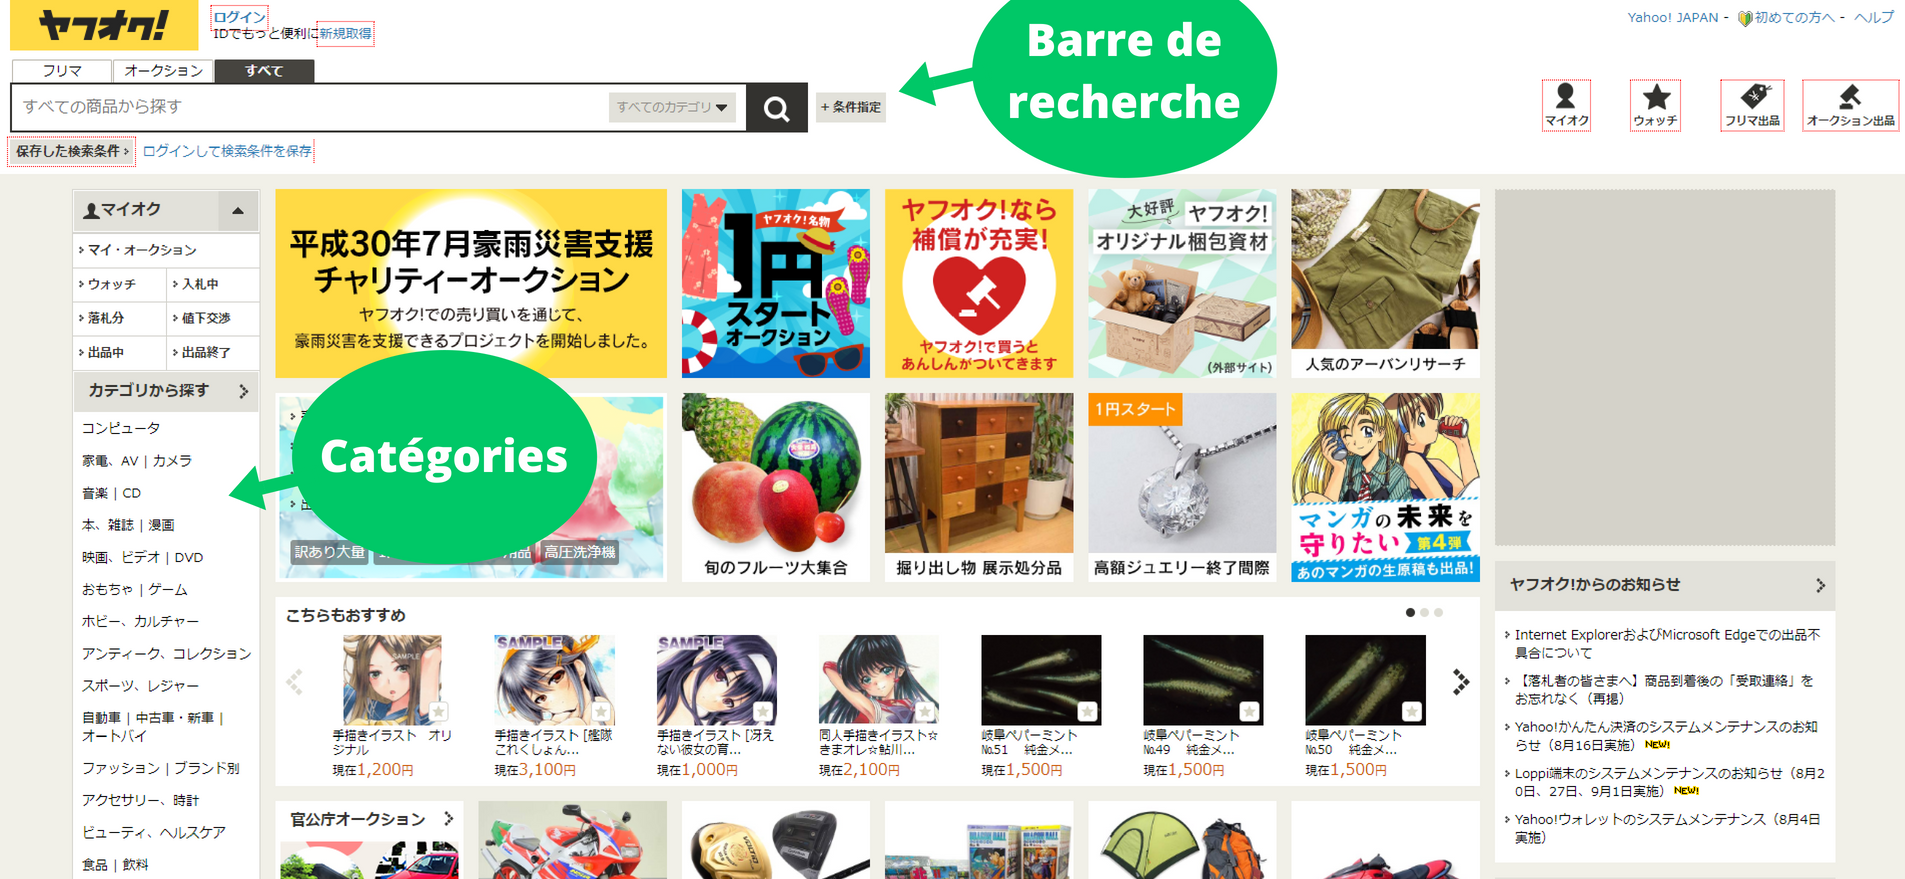 yahoo-auction-japan-accueil